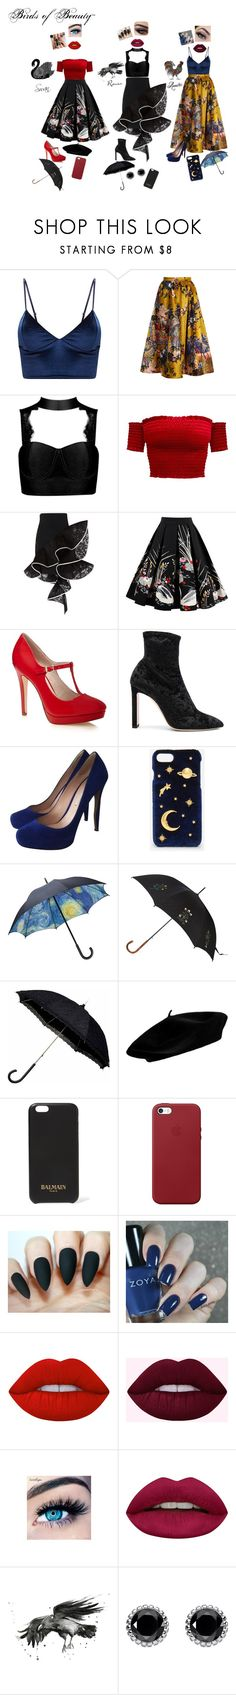 """""""Birds Of Beauty~"""" by weeb-176 on Polyvore featuring Erdem, David Koma, WithChic, Jimmy Choo, Nicholas Kirkwood, CHARLES & KEITH, Alexander McQueen, Balmain, Apple and Lime Crime"""